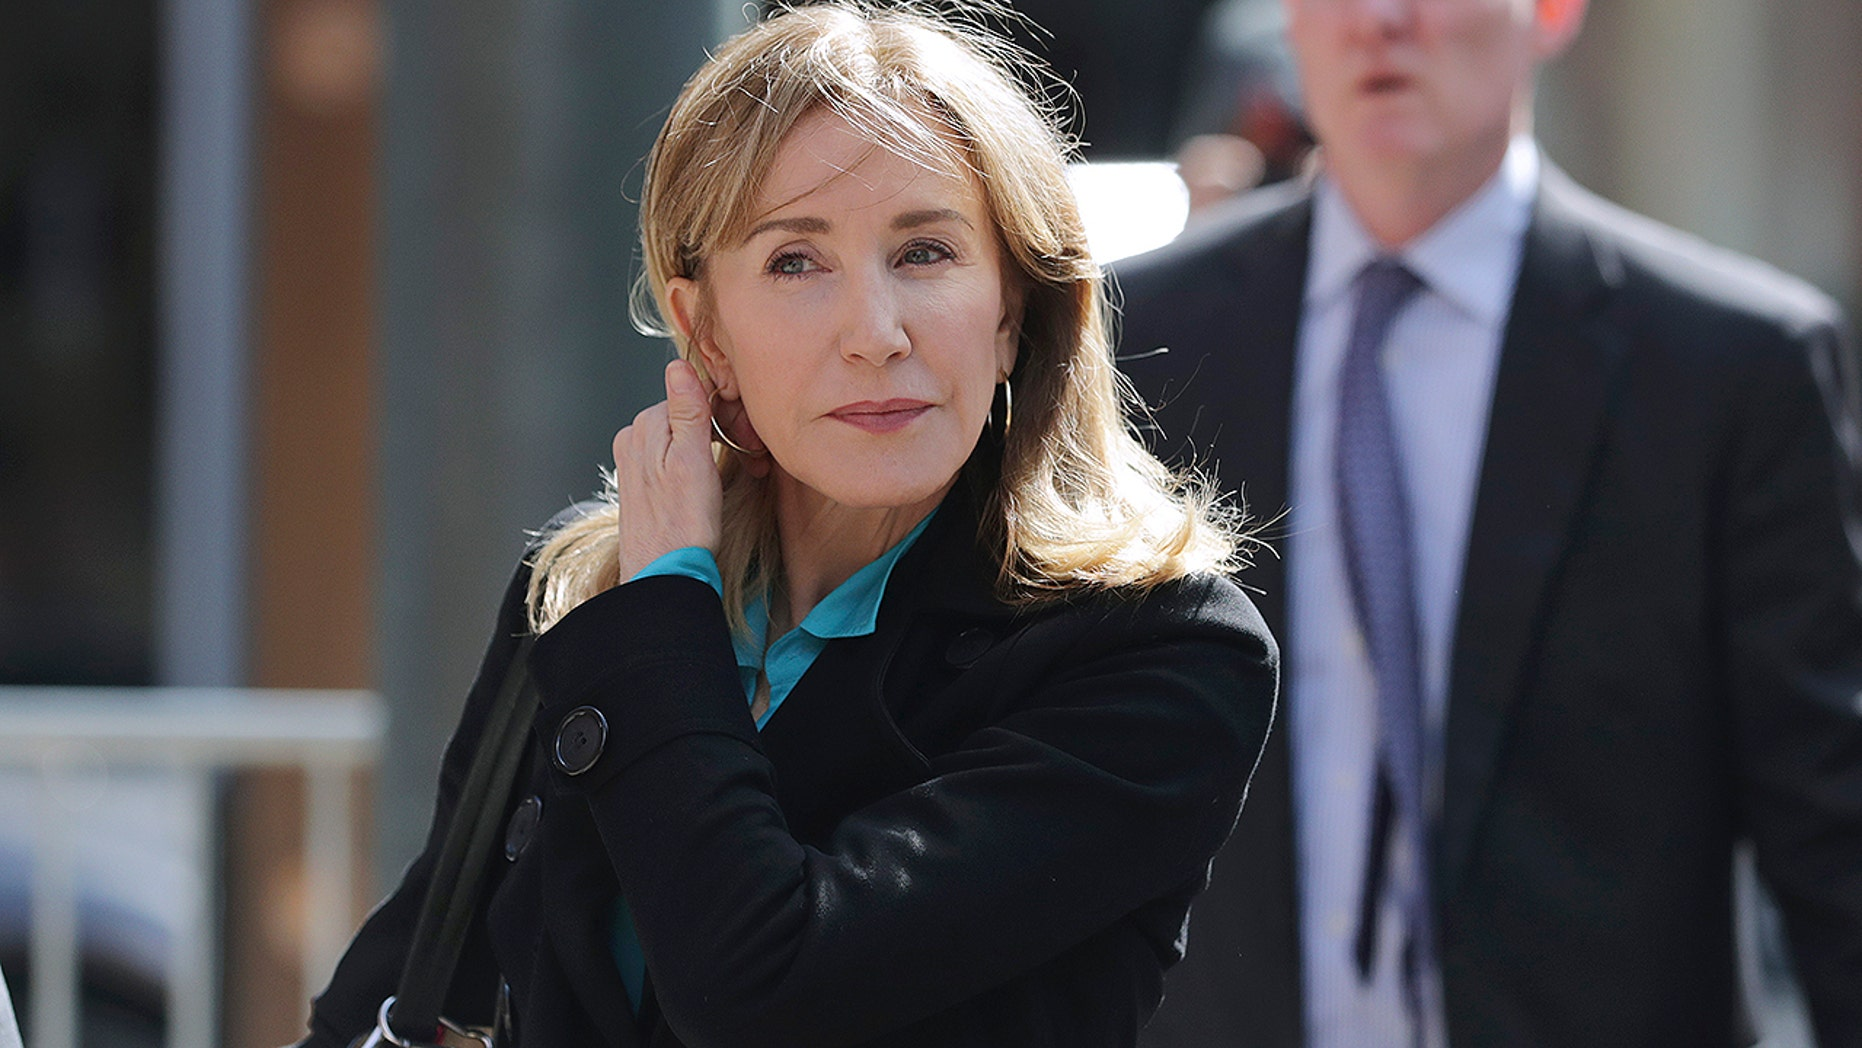 Actress Felicity Huffman arrives at federal court in Boston on Wednesday, April three, 2019, to face prices in a nationwide college admissions bribery scandal. (Linked Press)